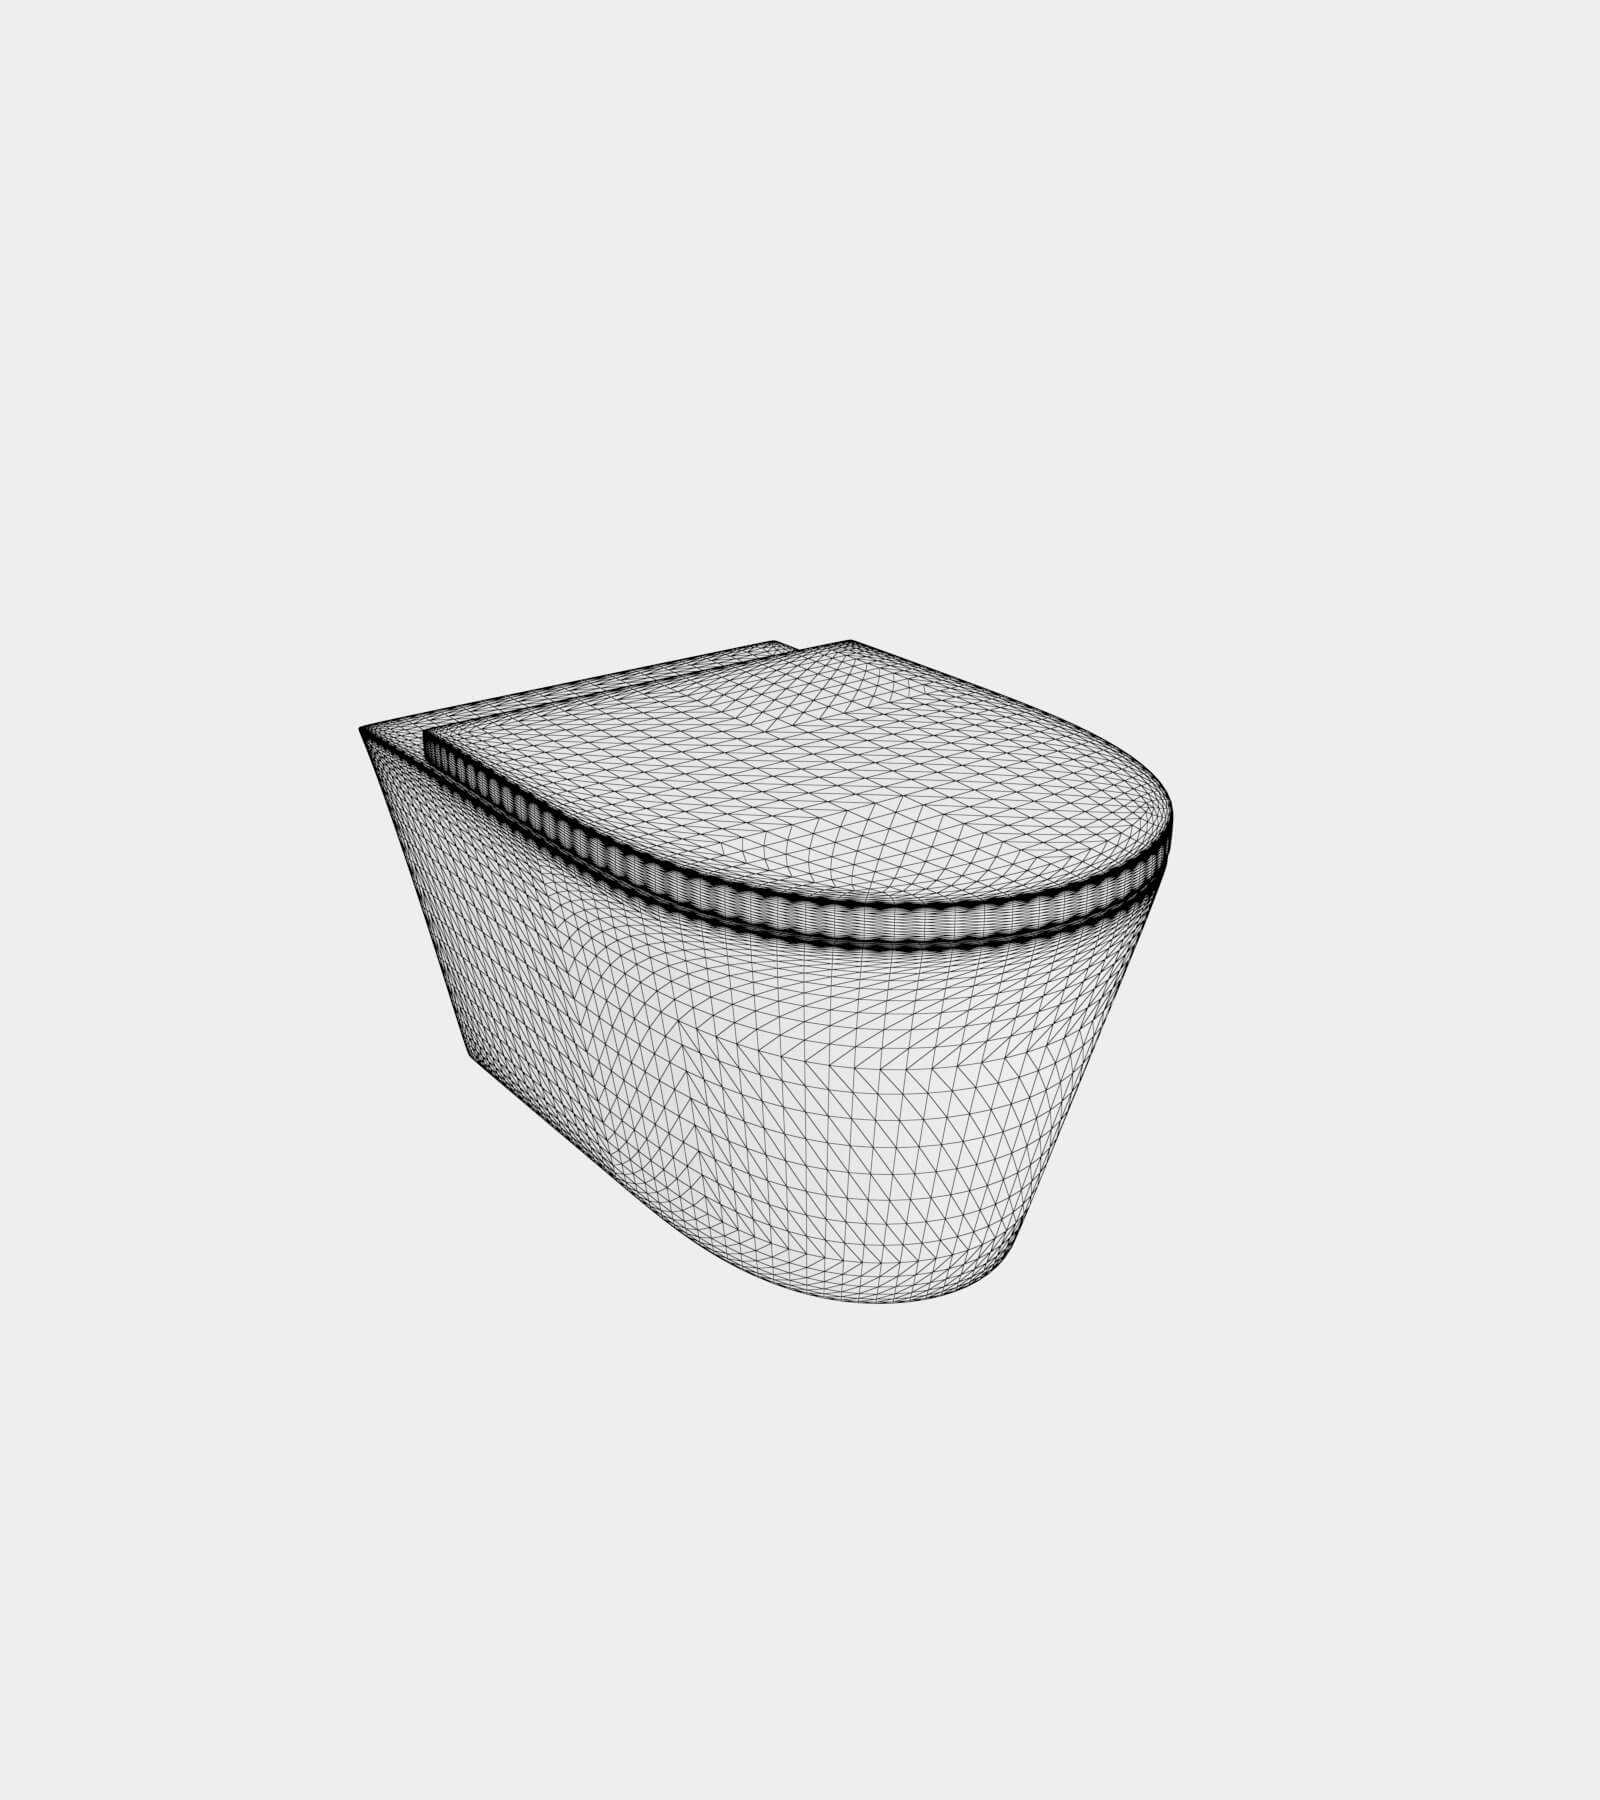 Wall mounted wc pan-wire-1 3D Model